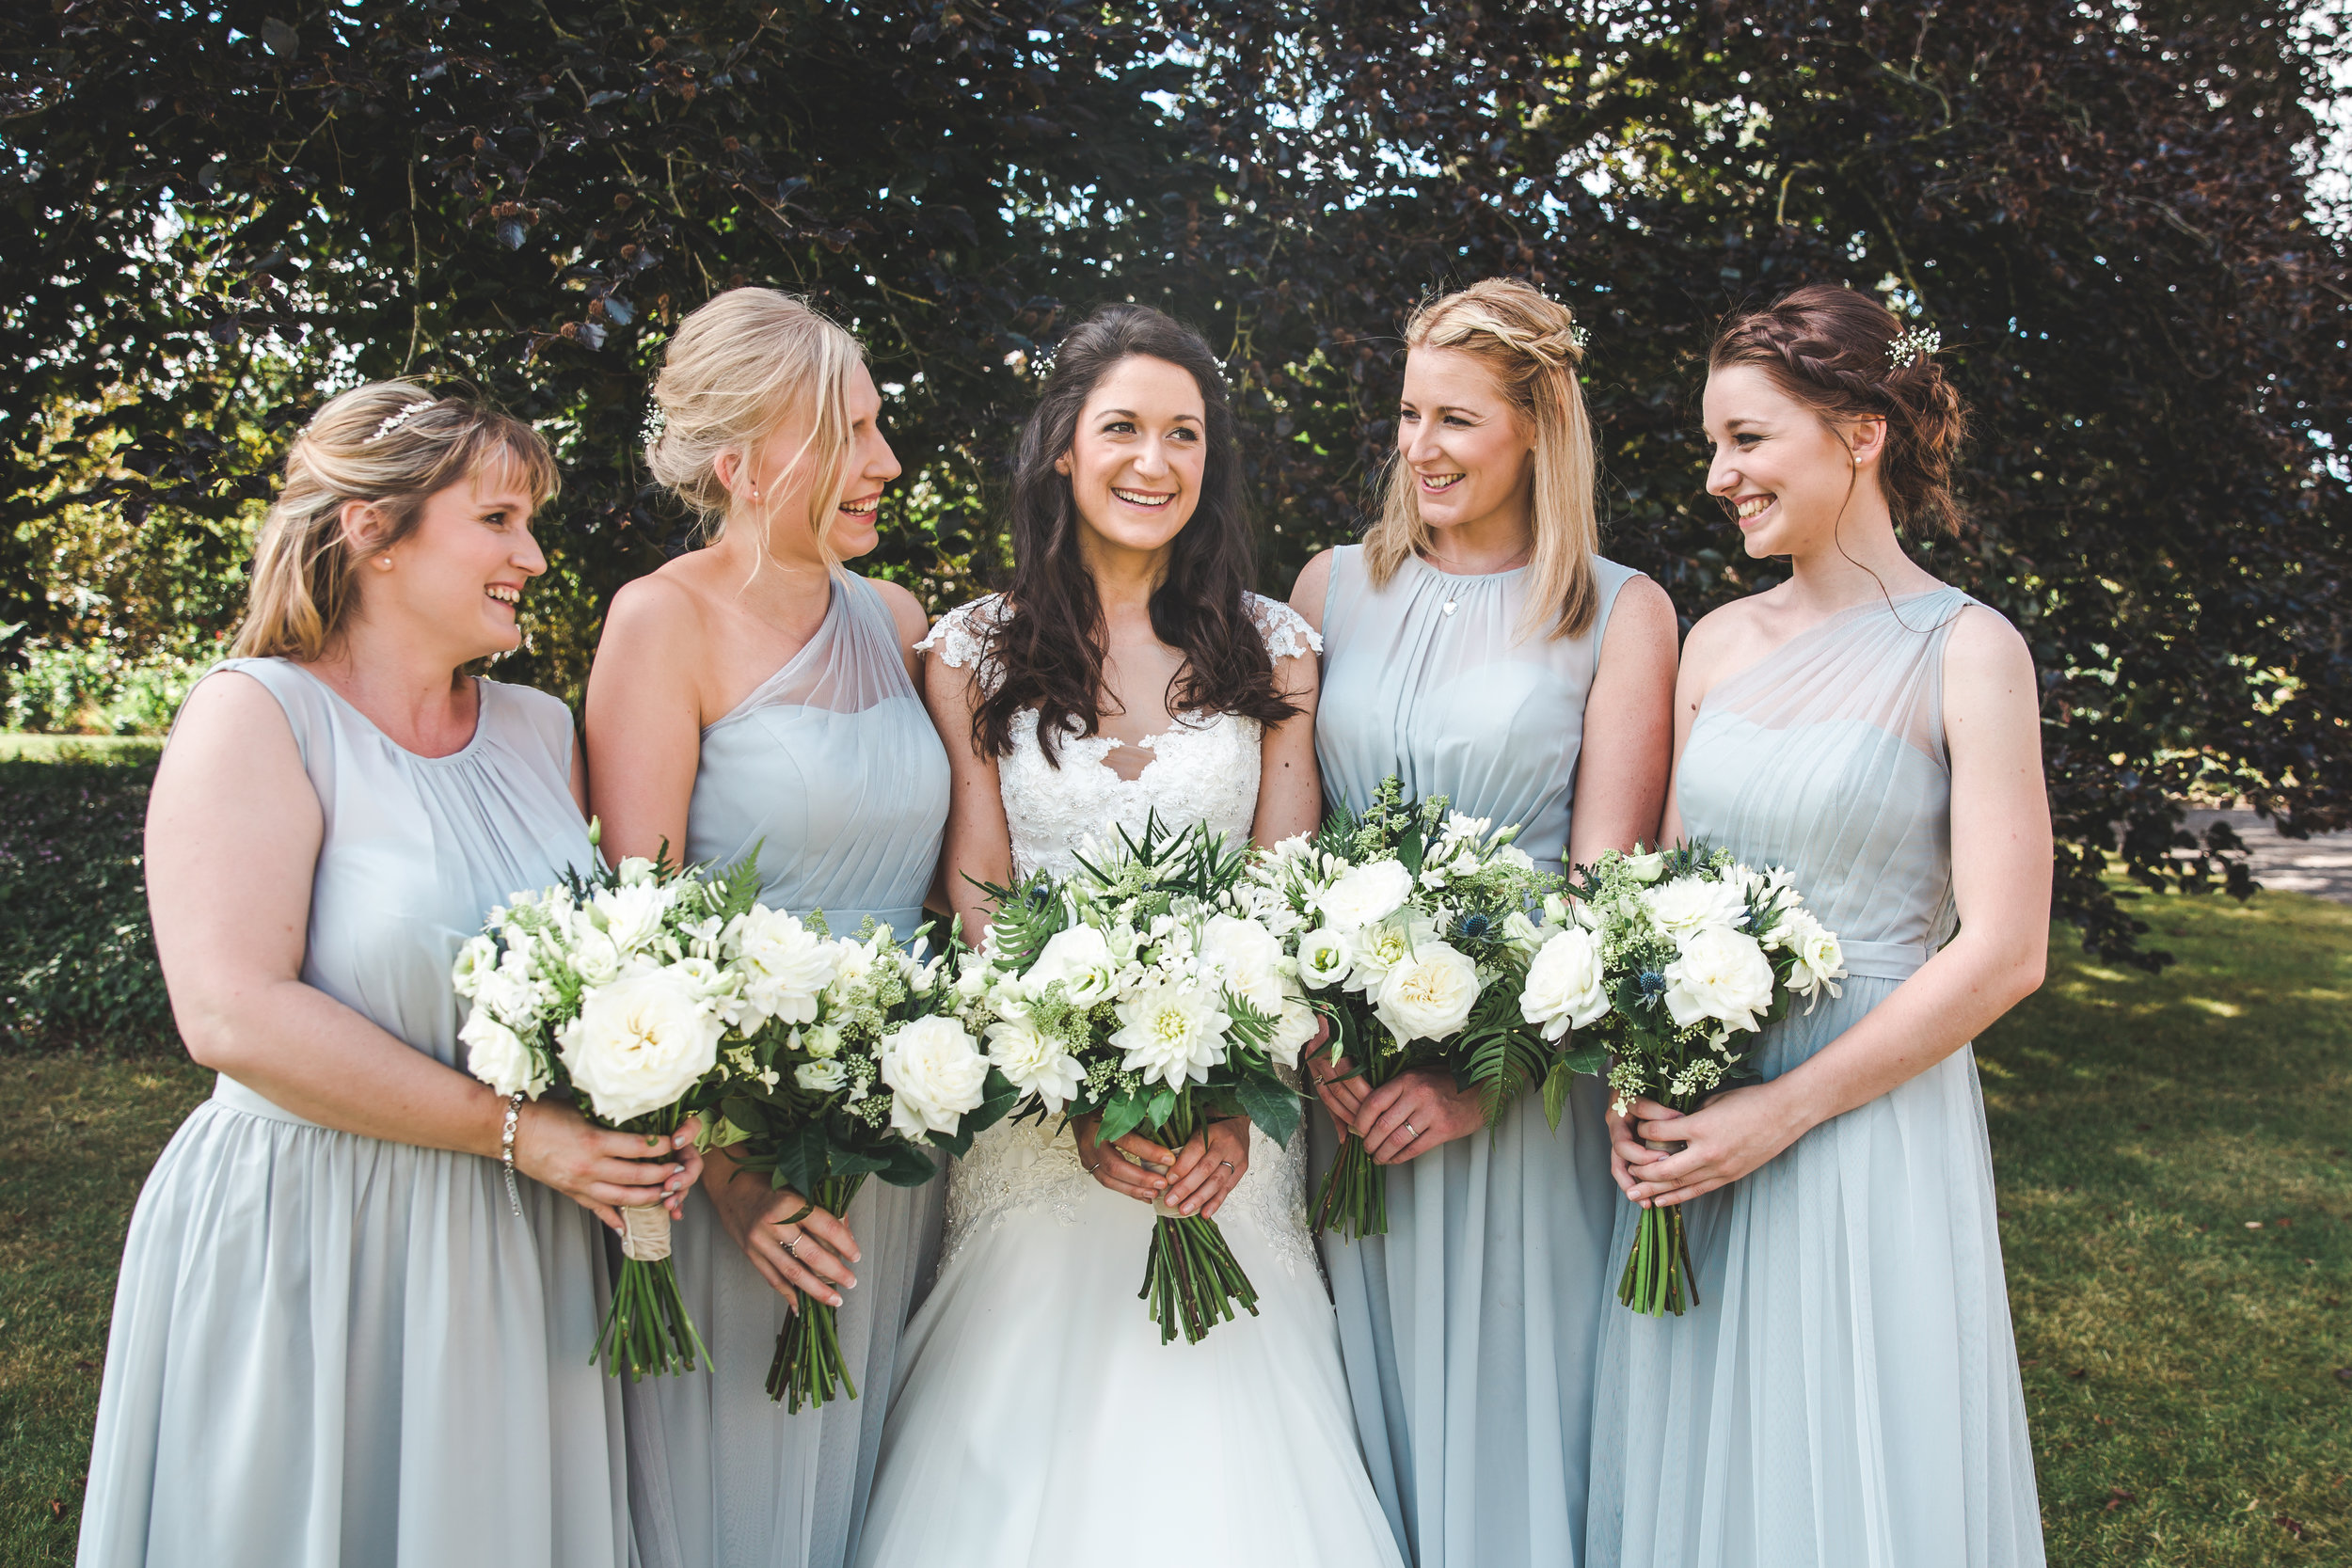 Natalie and her bridesmaids